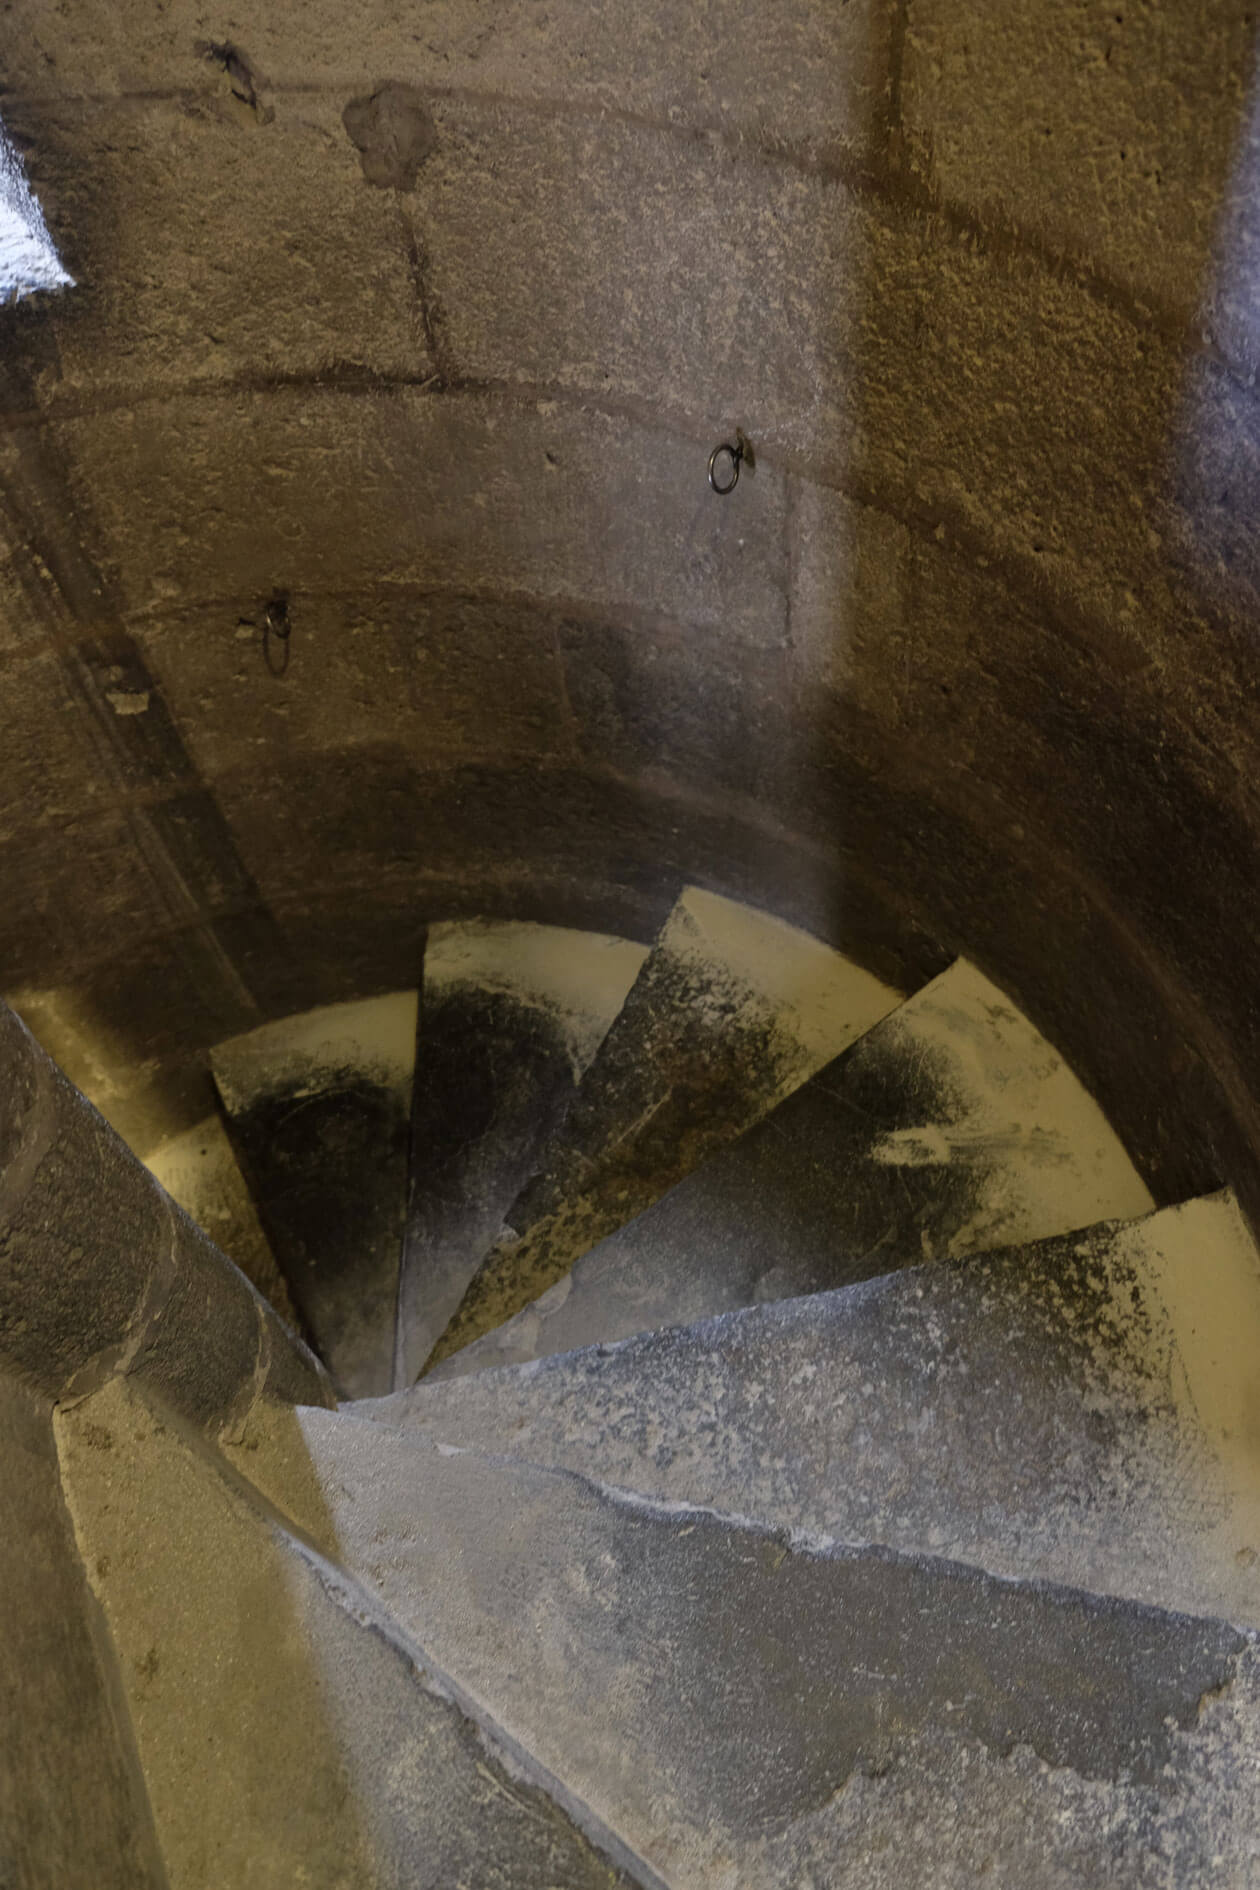 More narrow winding stairs on our way back down to the ground floor